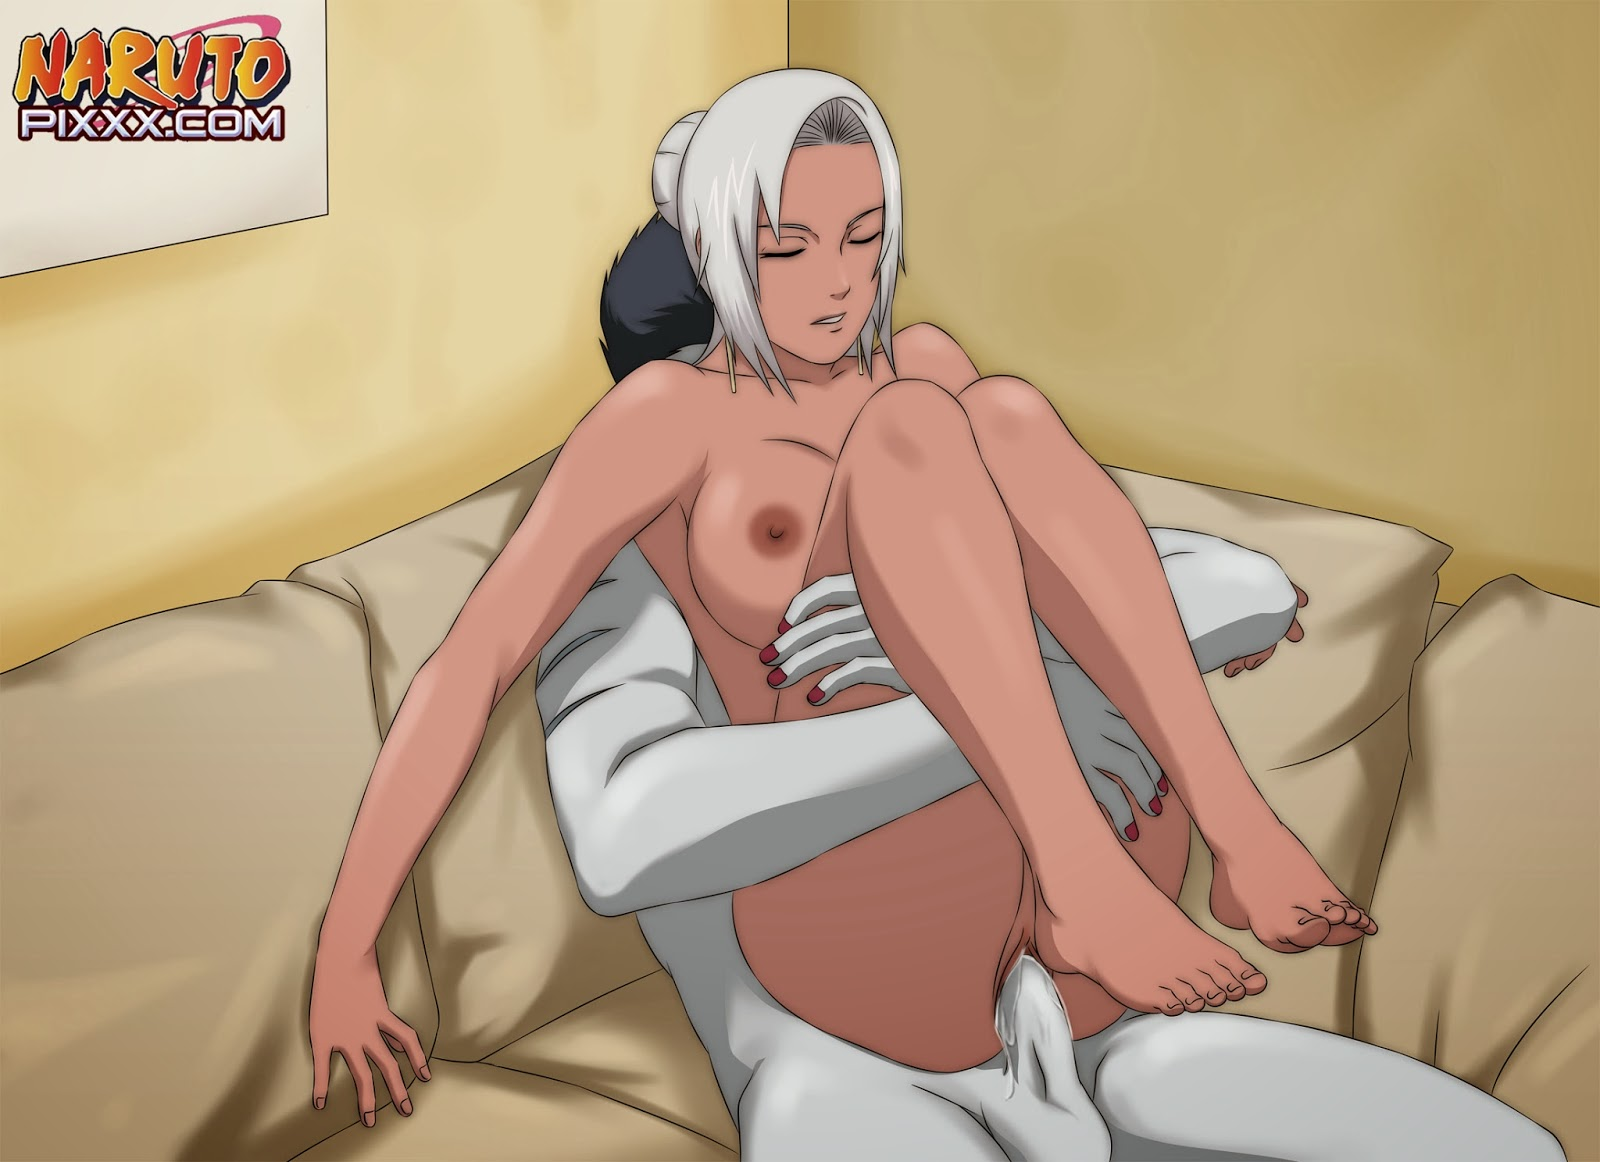 Naruto Mabui Hentai | Download Foto, Gambar, Wallpaper ...